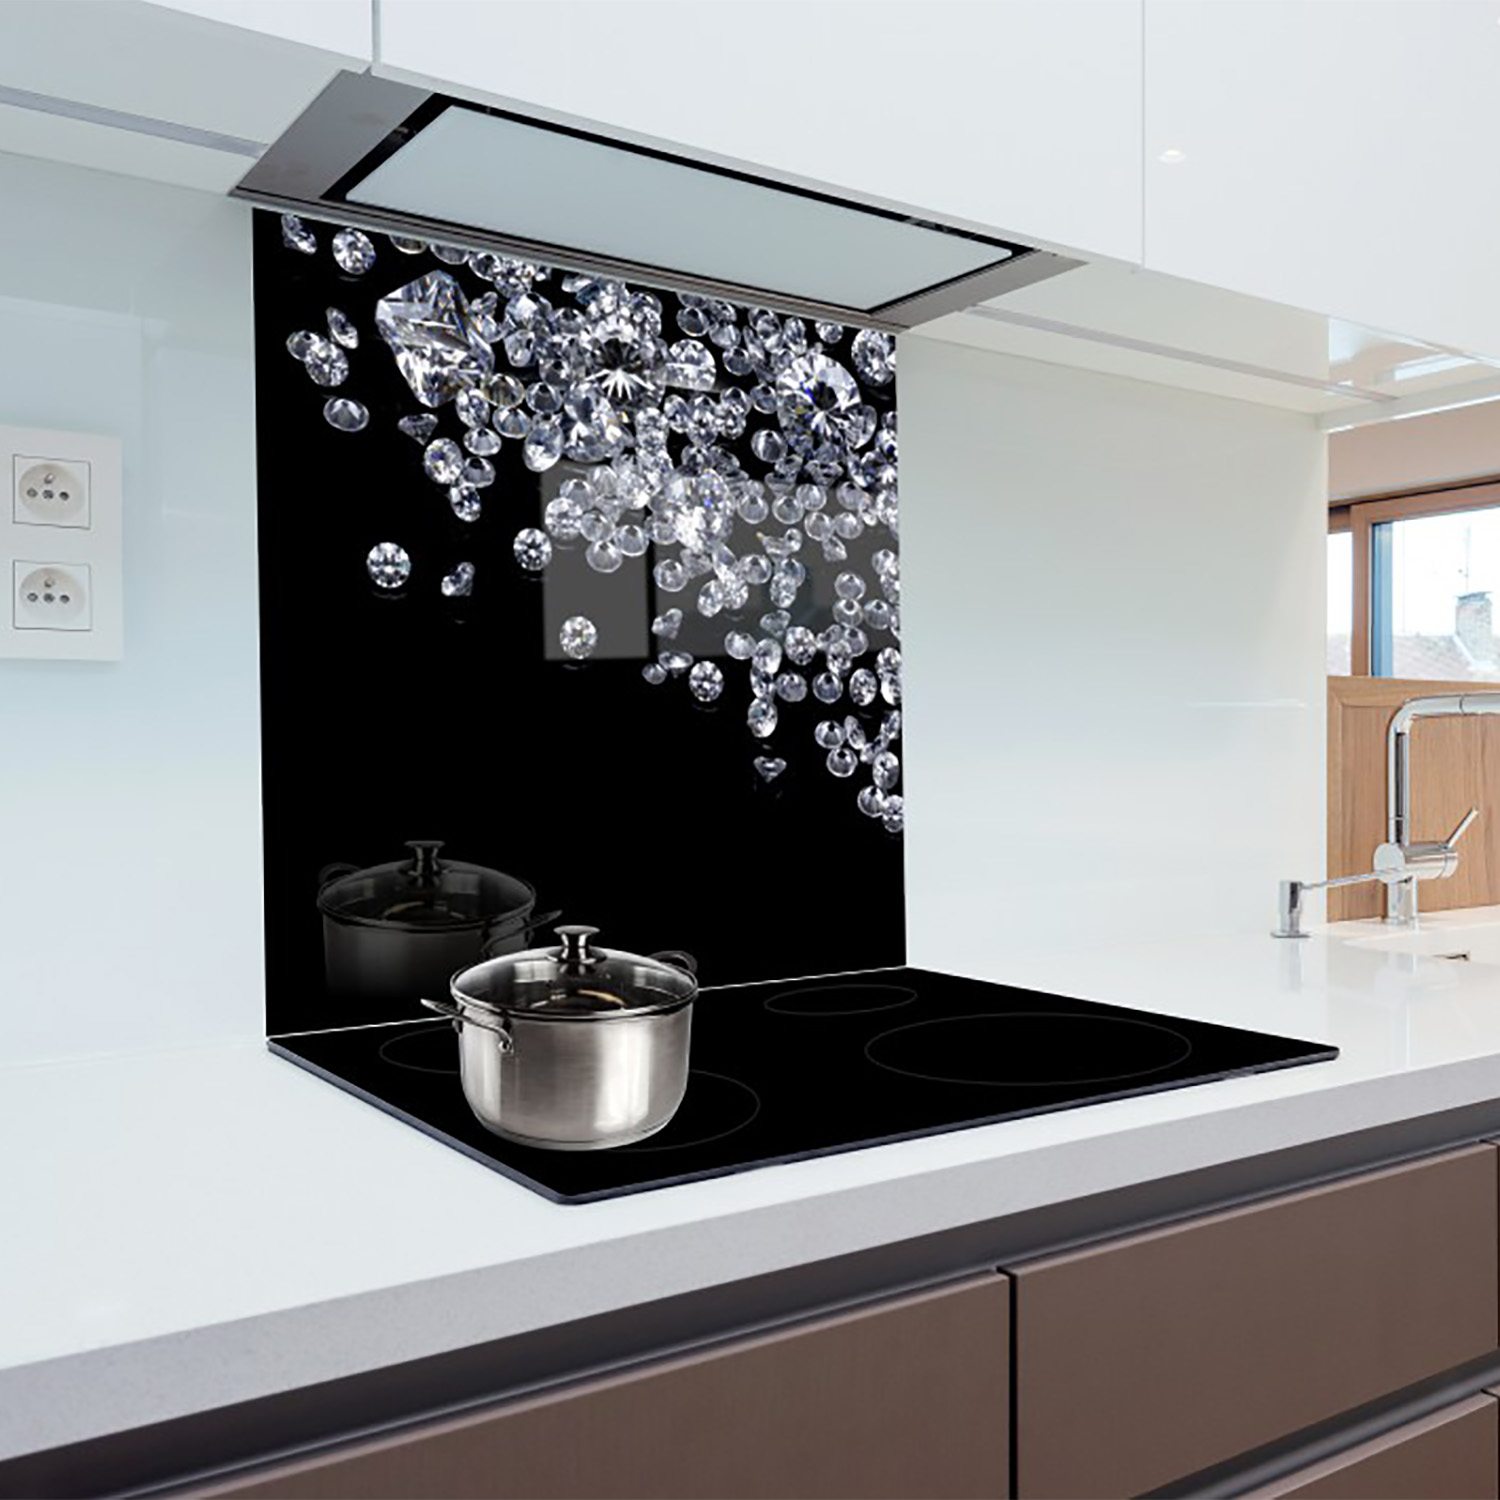 Credence Cuisine: Glass Splashback Kitchen Printed Panels Heat Resistant